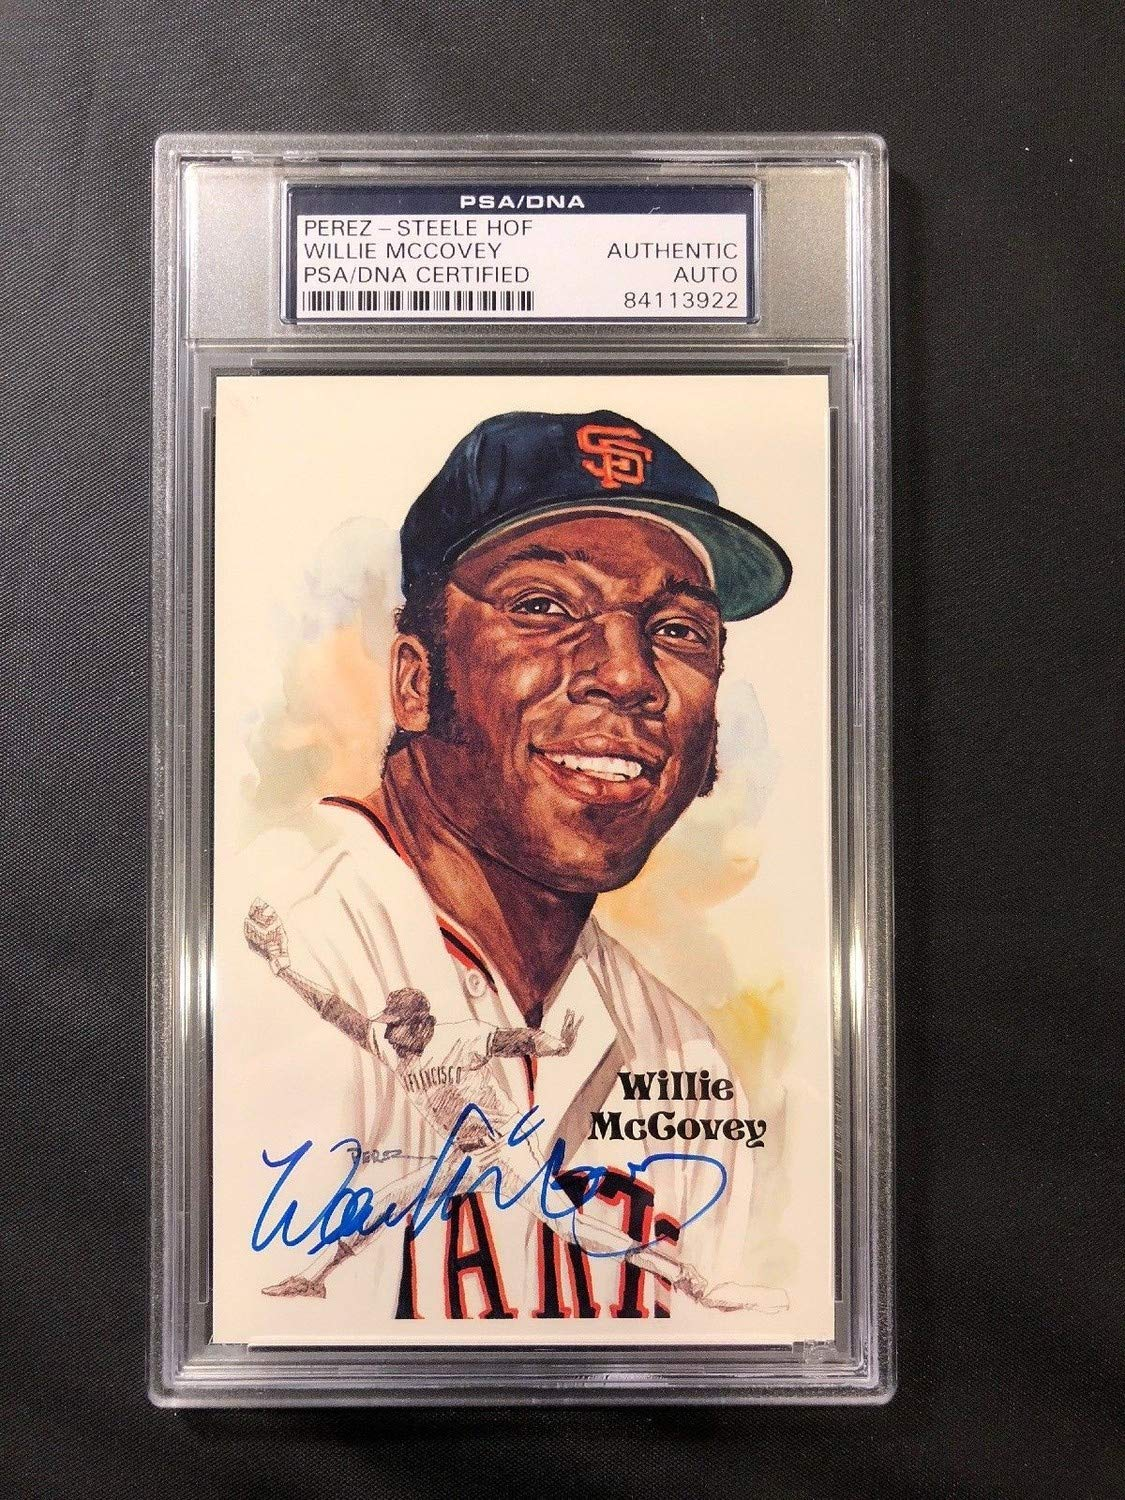 Willie Mccovey Perez Steele HOF Slabbed Autographed Signed Postcard PSA/DNA Authentic Certied